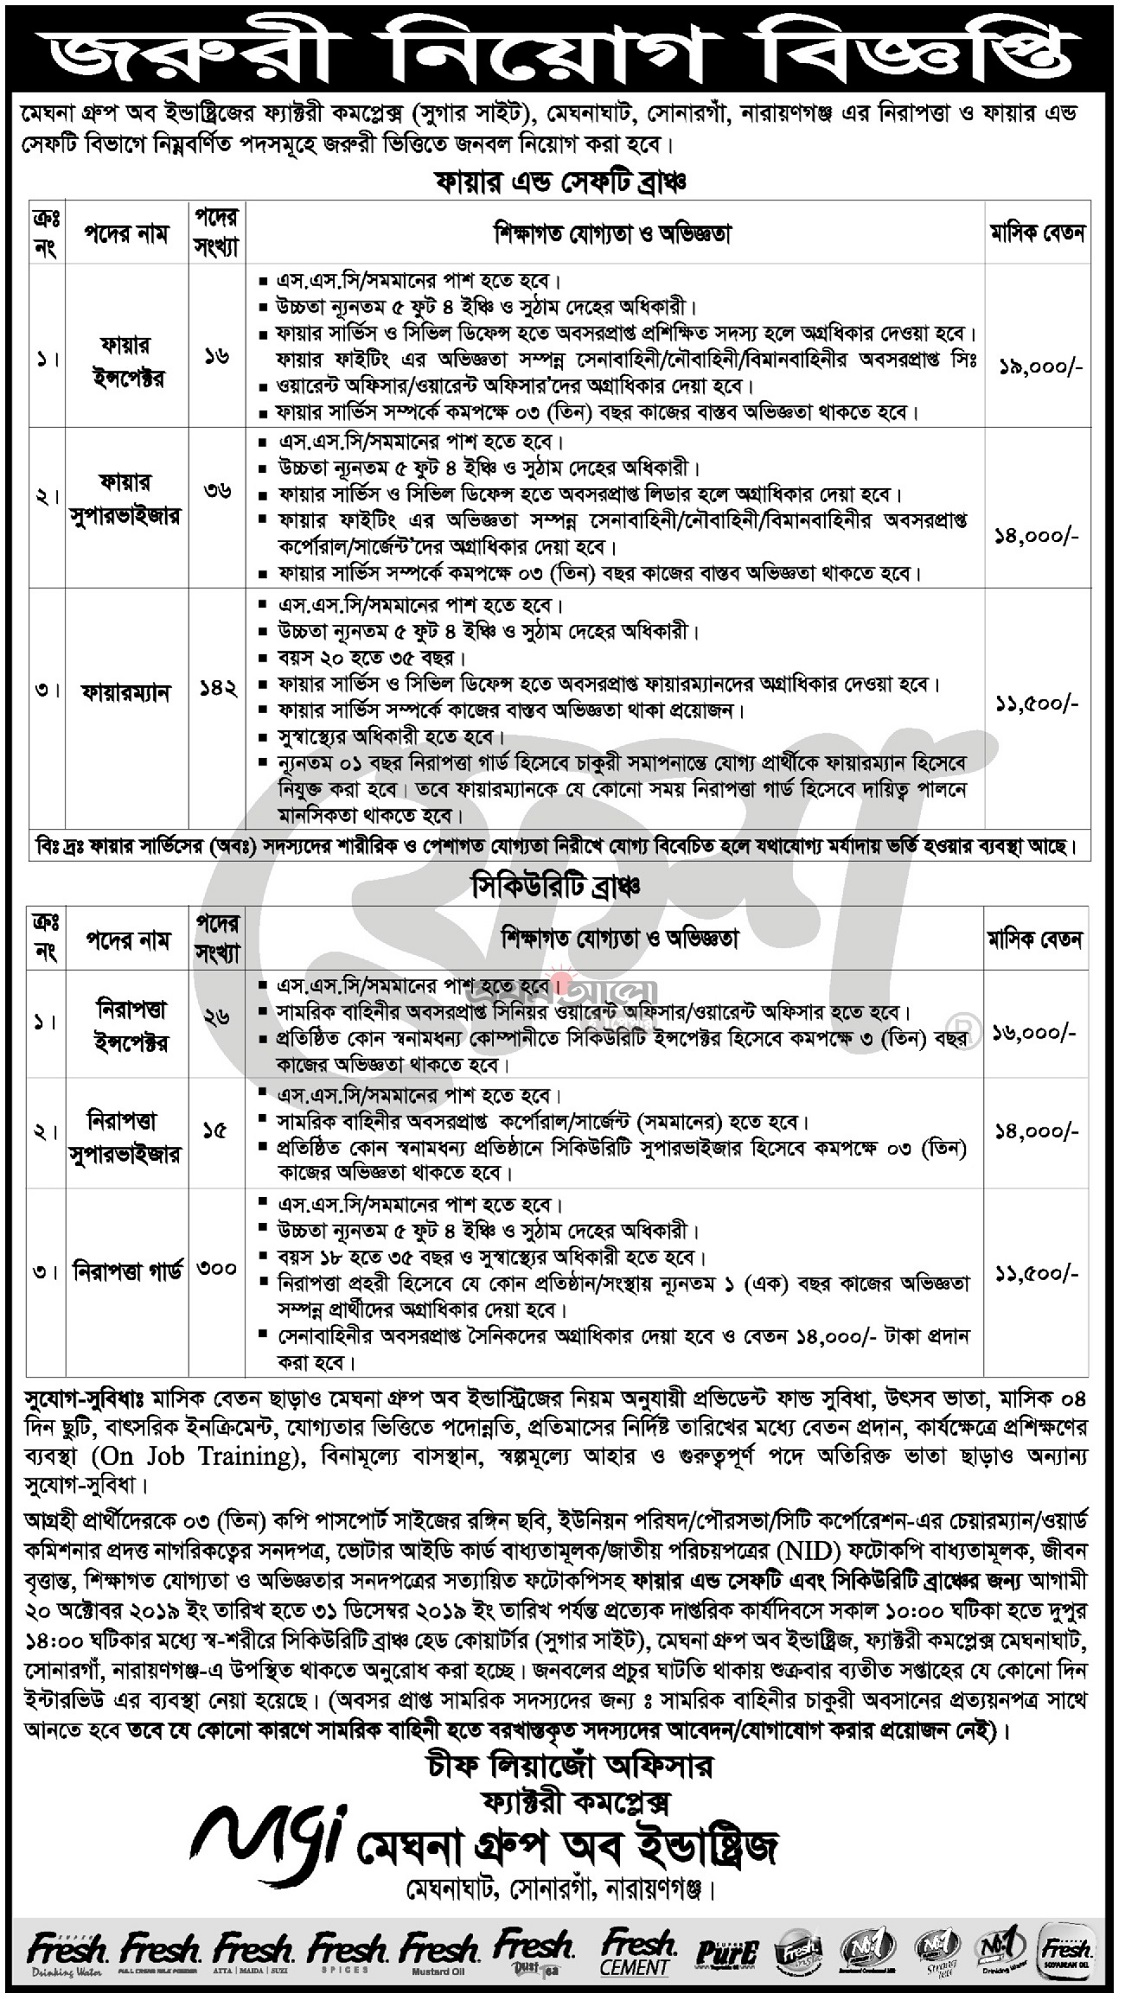 Meghna Group Job Circular 2019